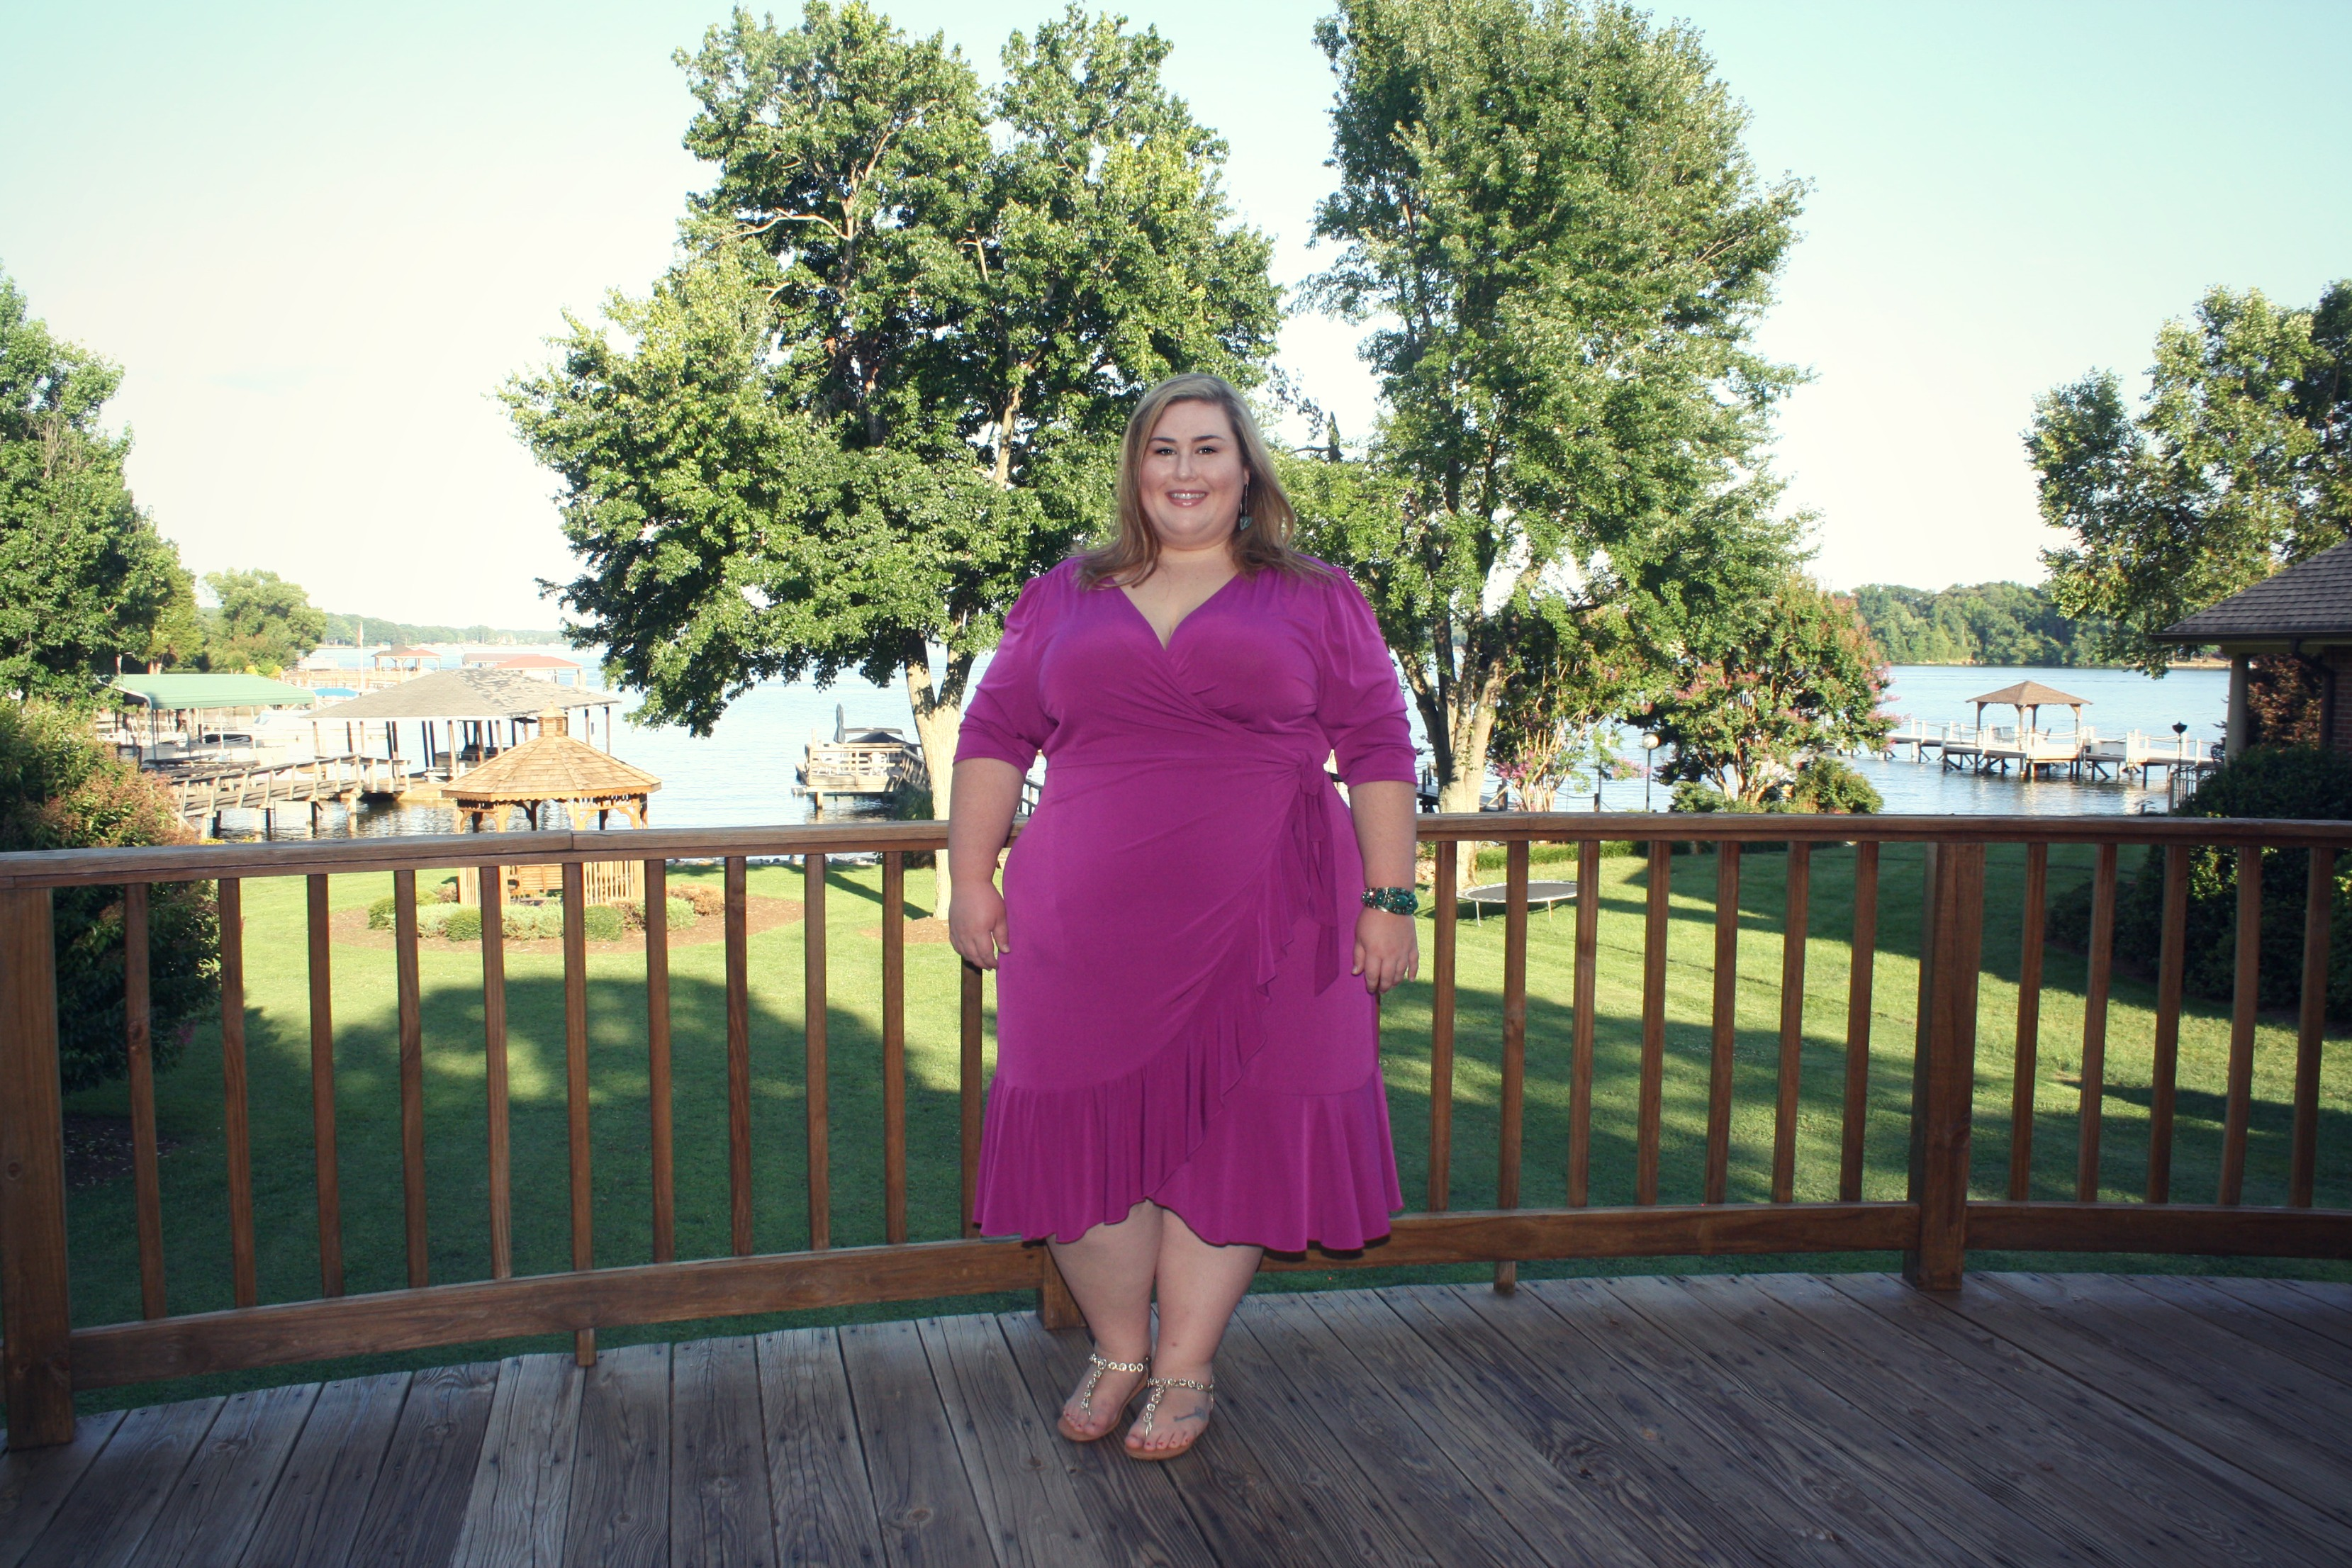 sharon grove bbw personals Meet single women in sharon grove ky online & chat in the forums dhu is a 100% free dating site to find single women in sharon grove.